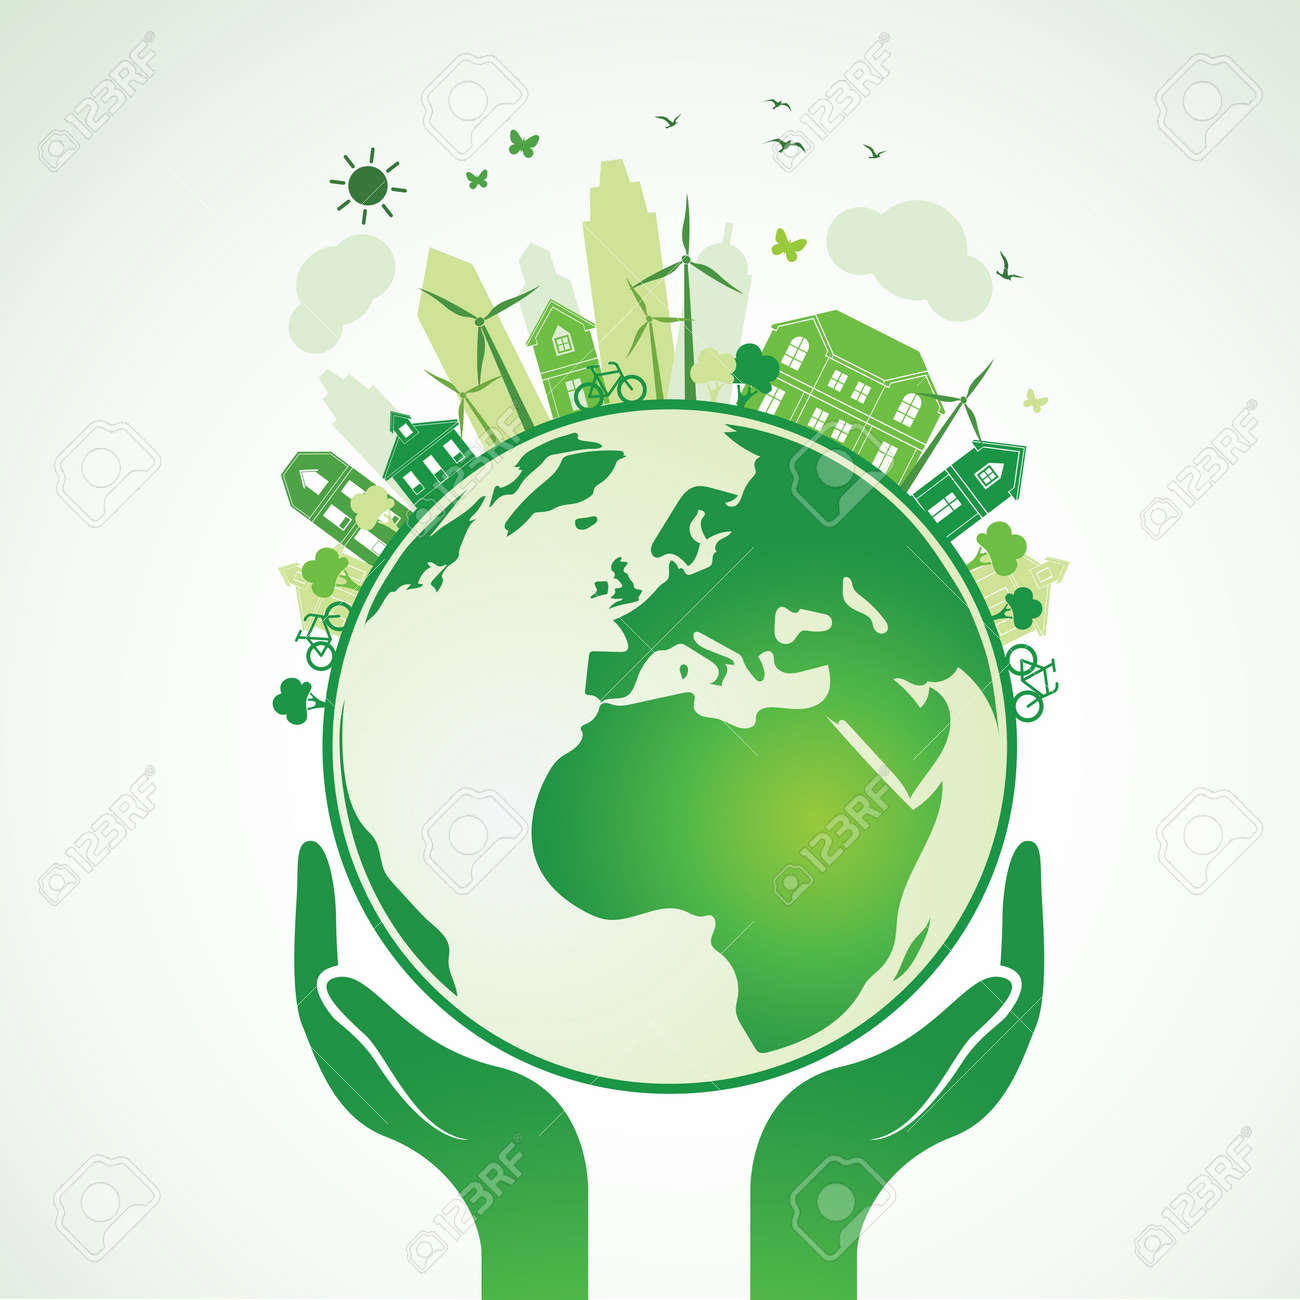 Hands Holding The Green Earth Globe with city ,Illustration Stock Vector - 51549143